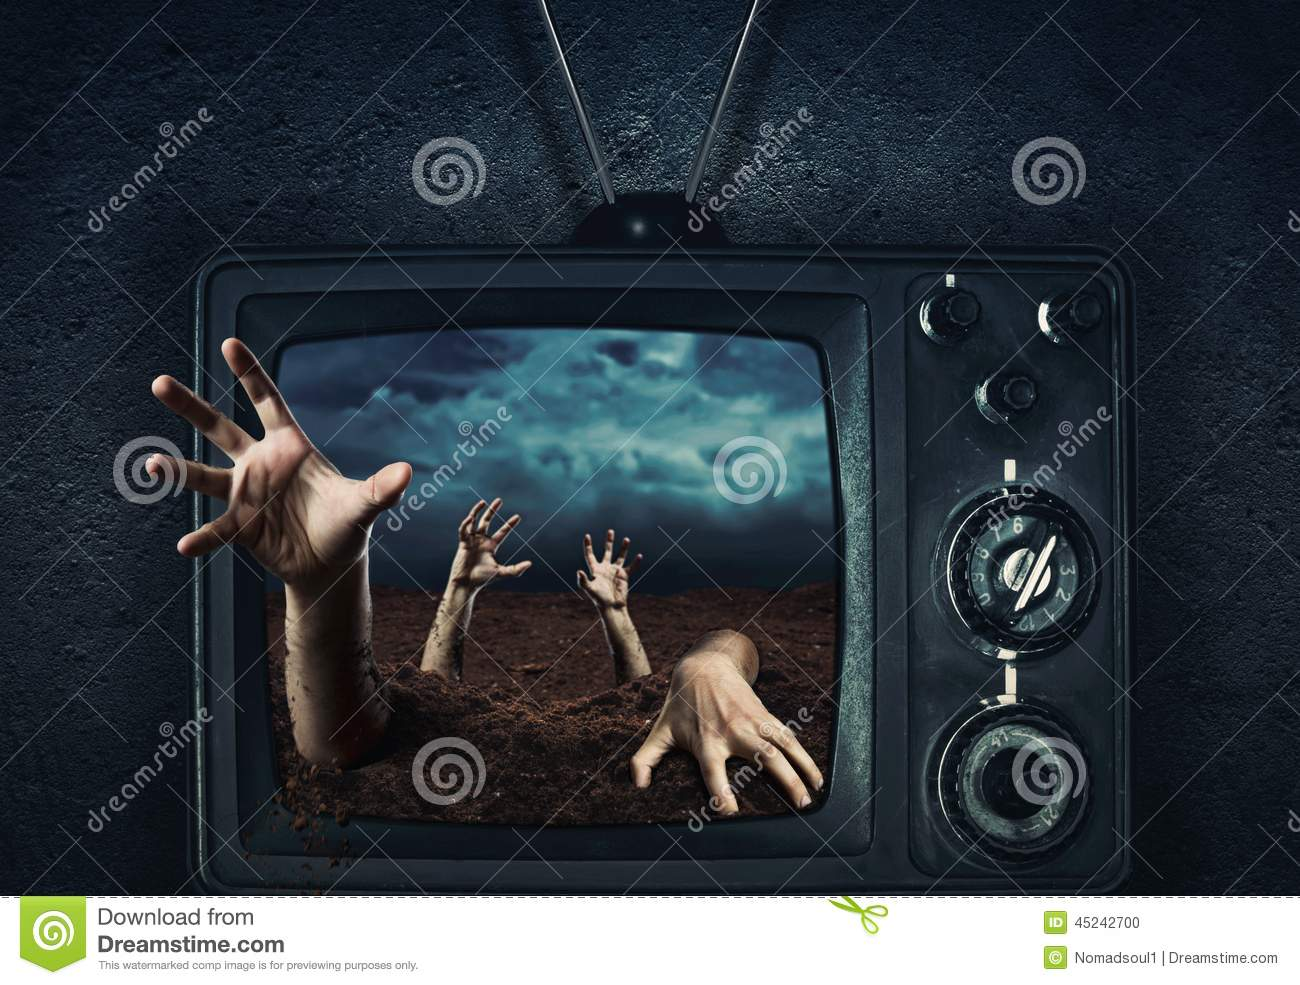 Zombie hand coming out of TV